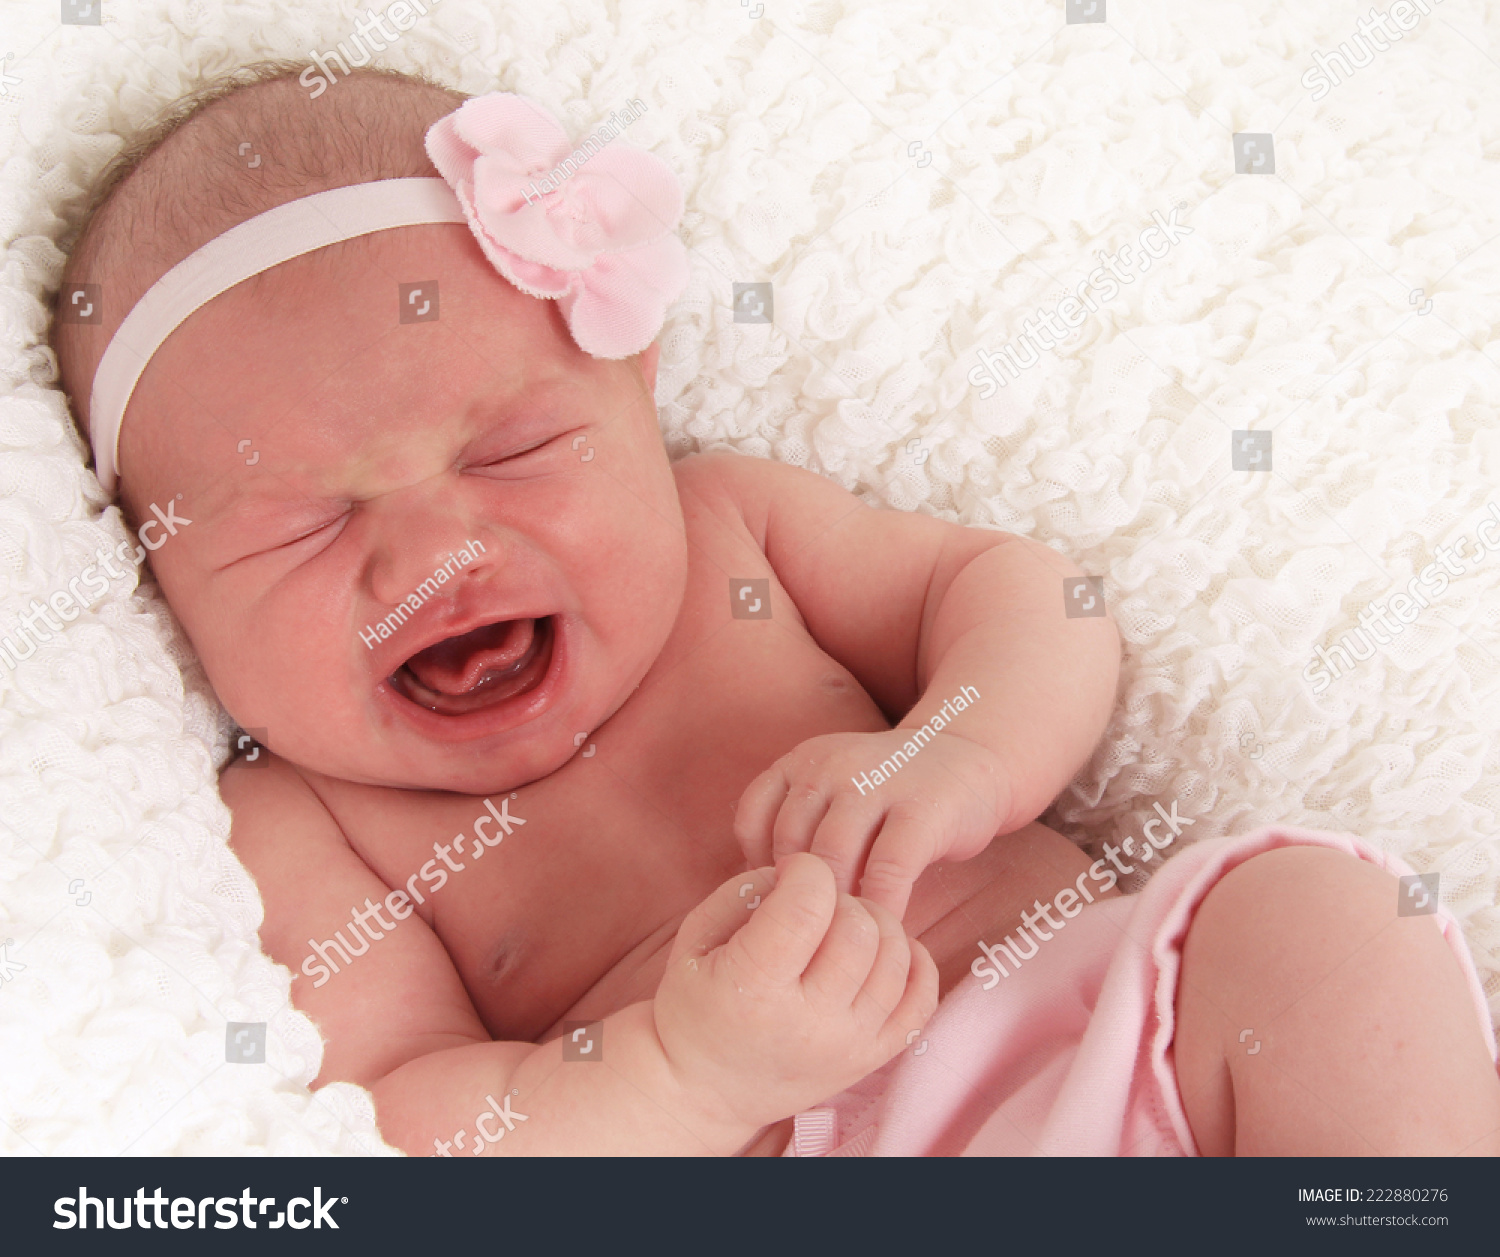 One week old newborn baby girl crying loudly